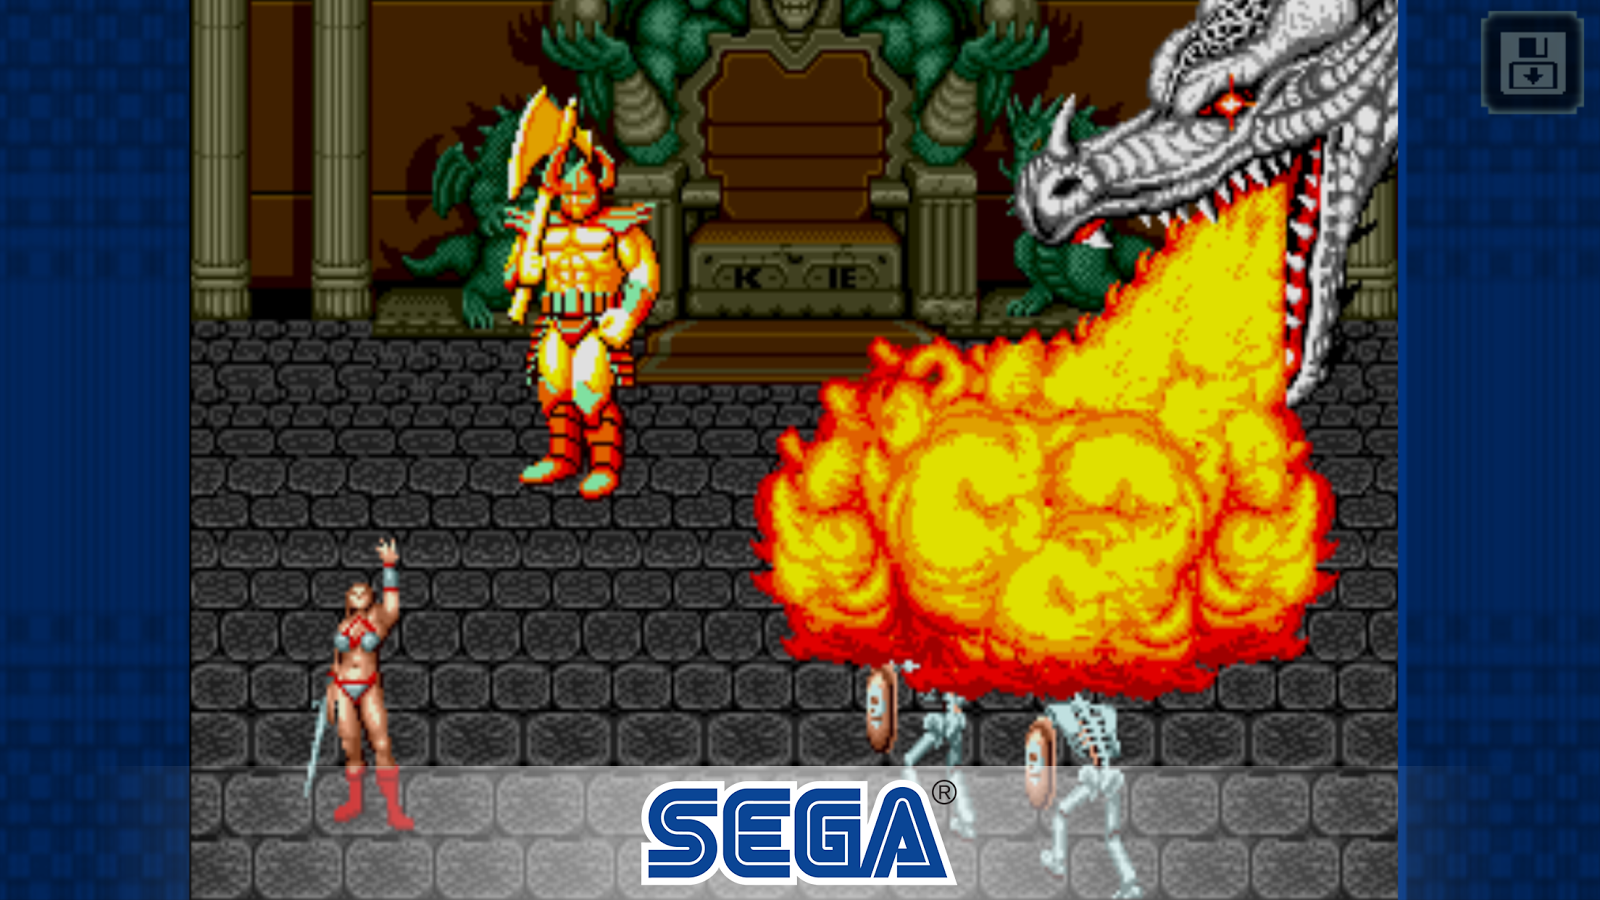 12 Forever Classic Features: Newest SEGA Forever Game: Golden Axe, A Classic Side